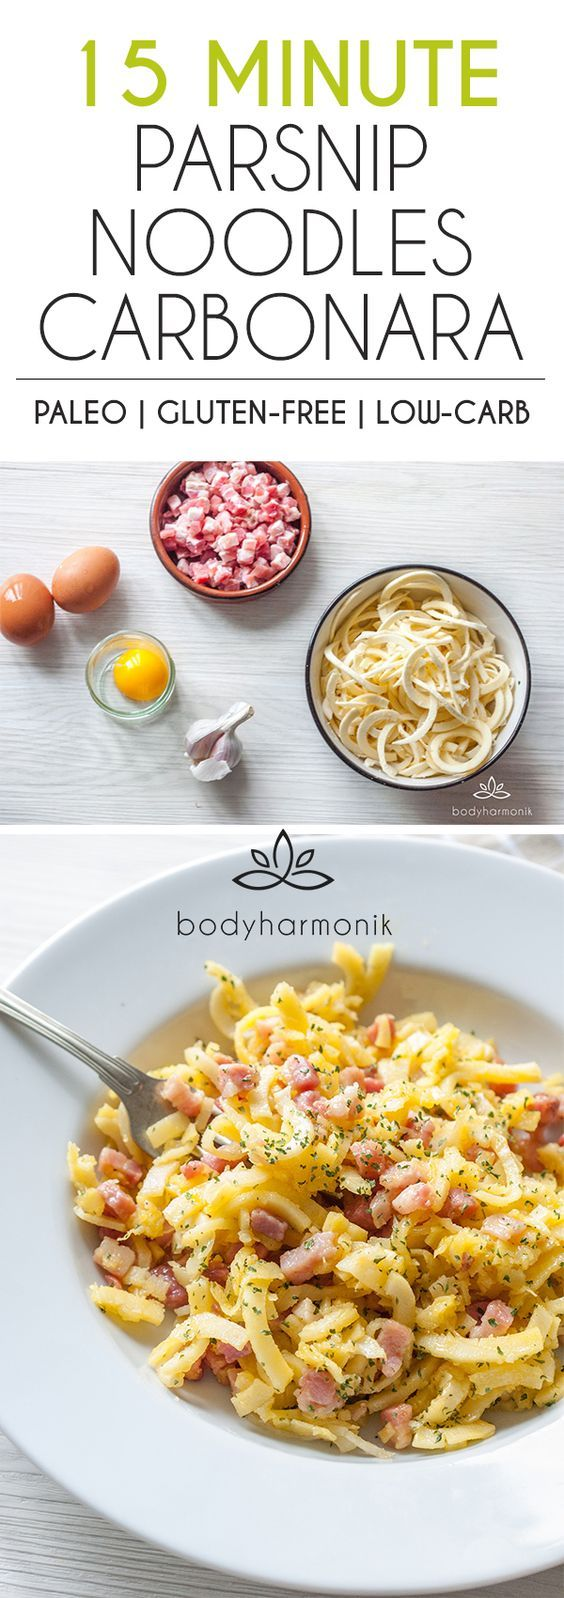 Do you love a classic Carbonara? No cream, just silky egg yolk. Well this is a classic Italian Carbonara recipe, but with a twist. Instead of spaghetti, we are using parsnip noodles. Yes, this delicious vegetable creates the perfect base for a paleo and gluten-free Carbonara. Easy 15-minute low-carb spiralizer recipe!